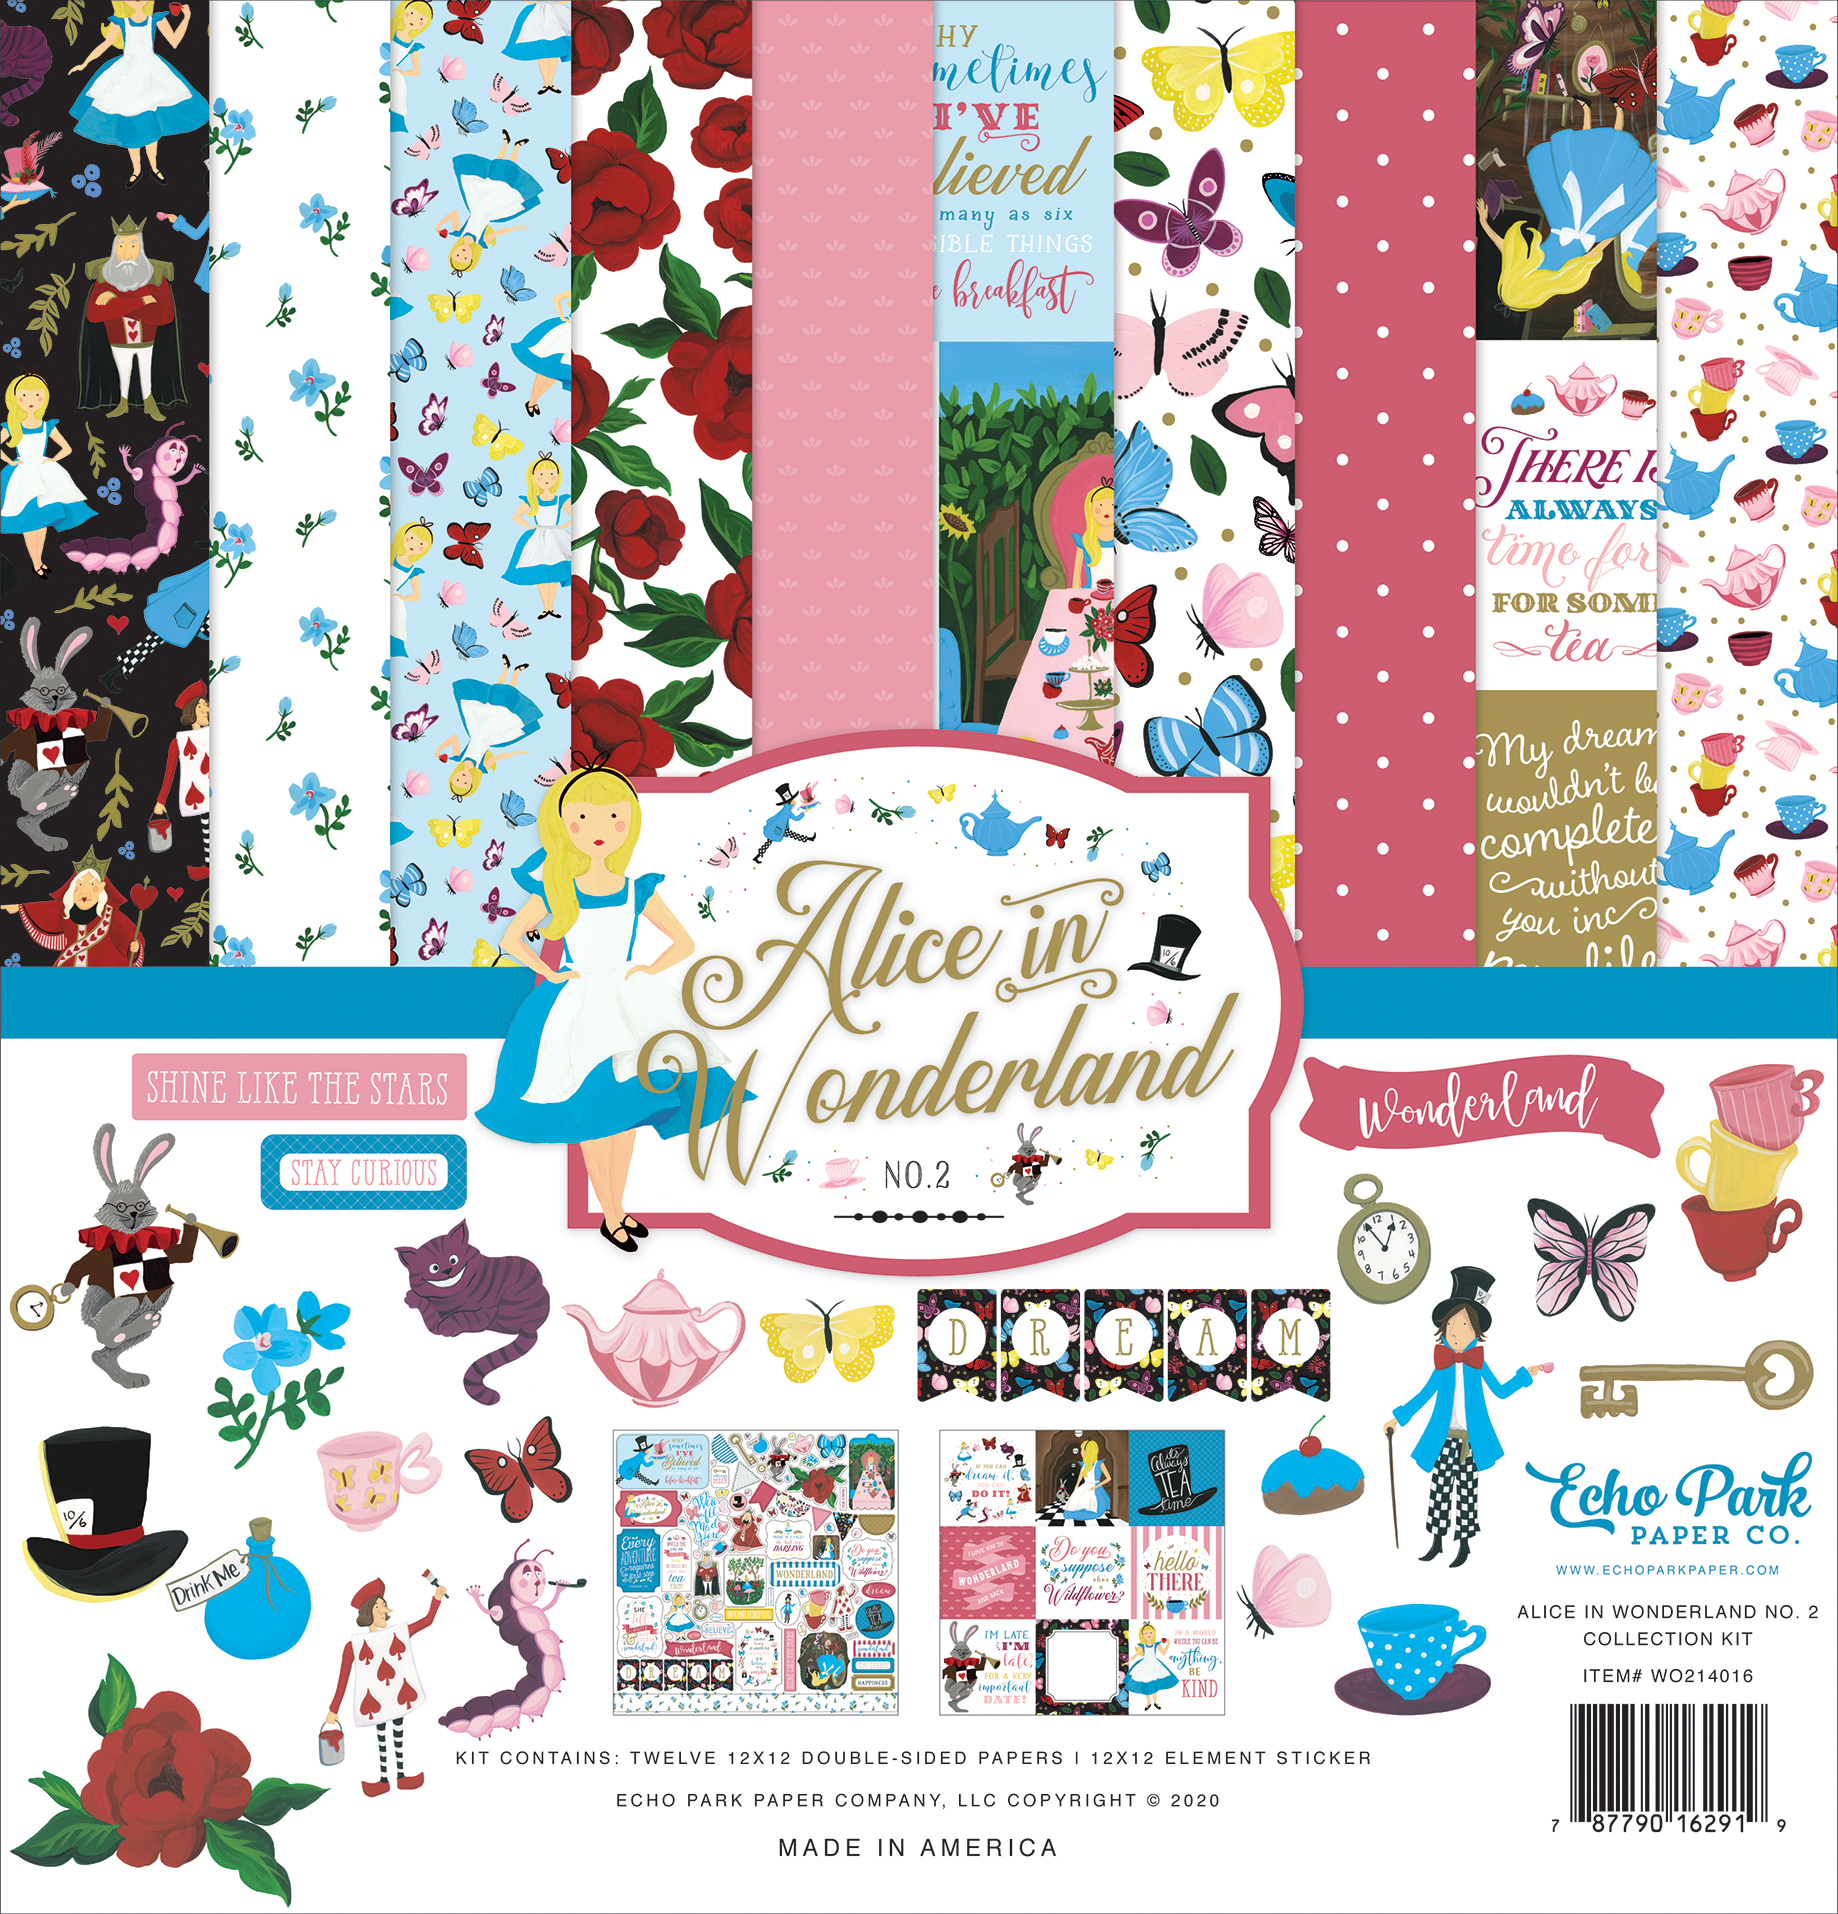 Alice In Wonderland No. 2 Collection Kit